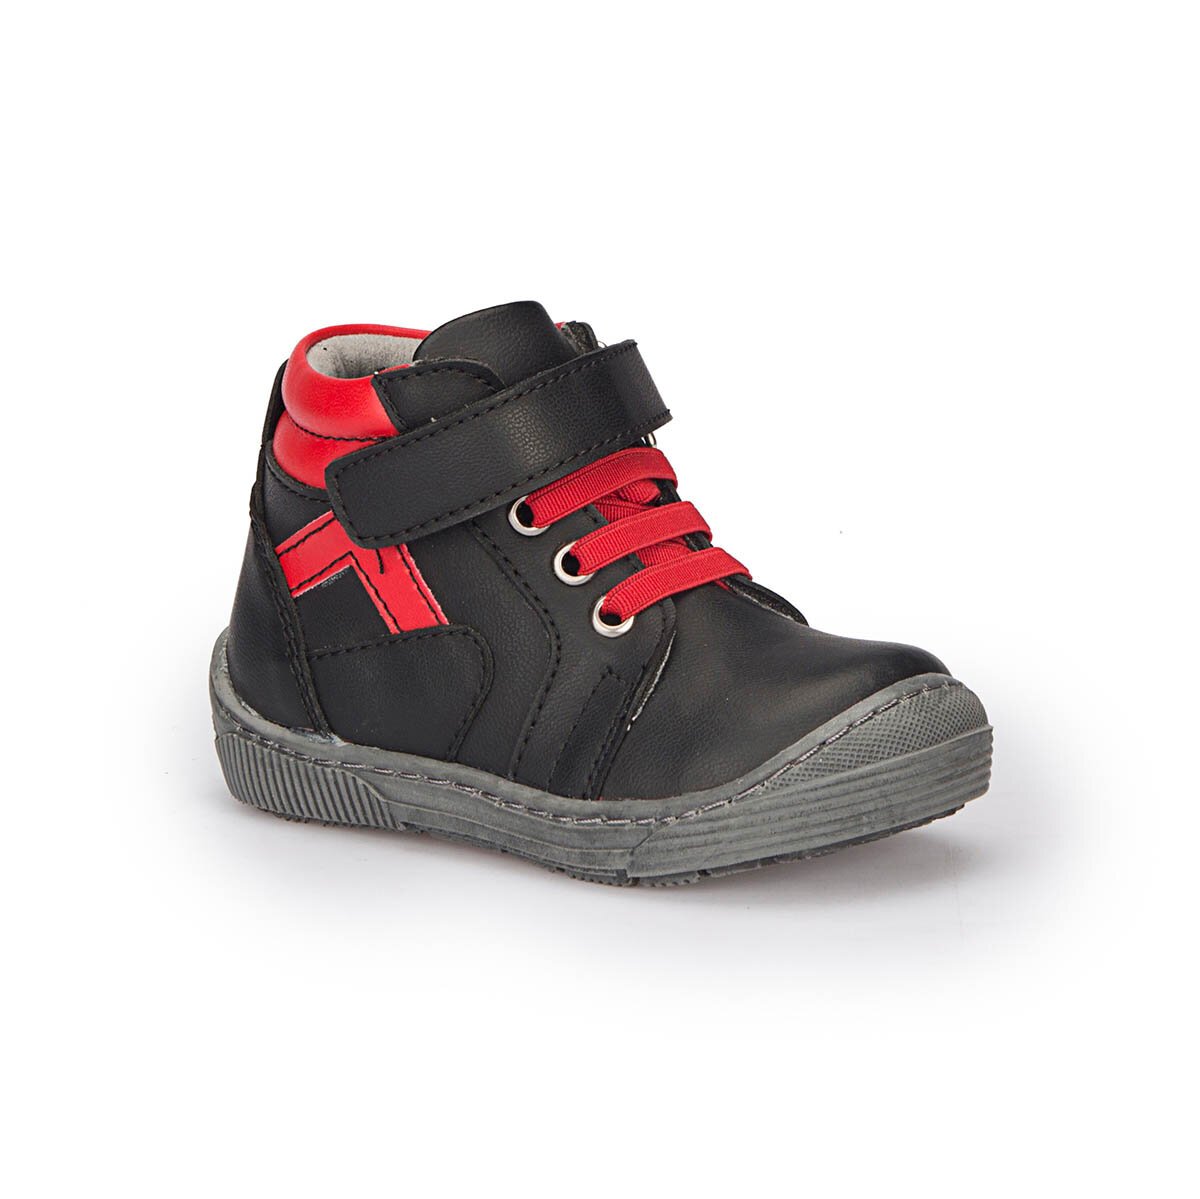 FLO 72.508428.B Black Male Child Sneaker Shoes Polaris